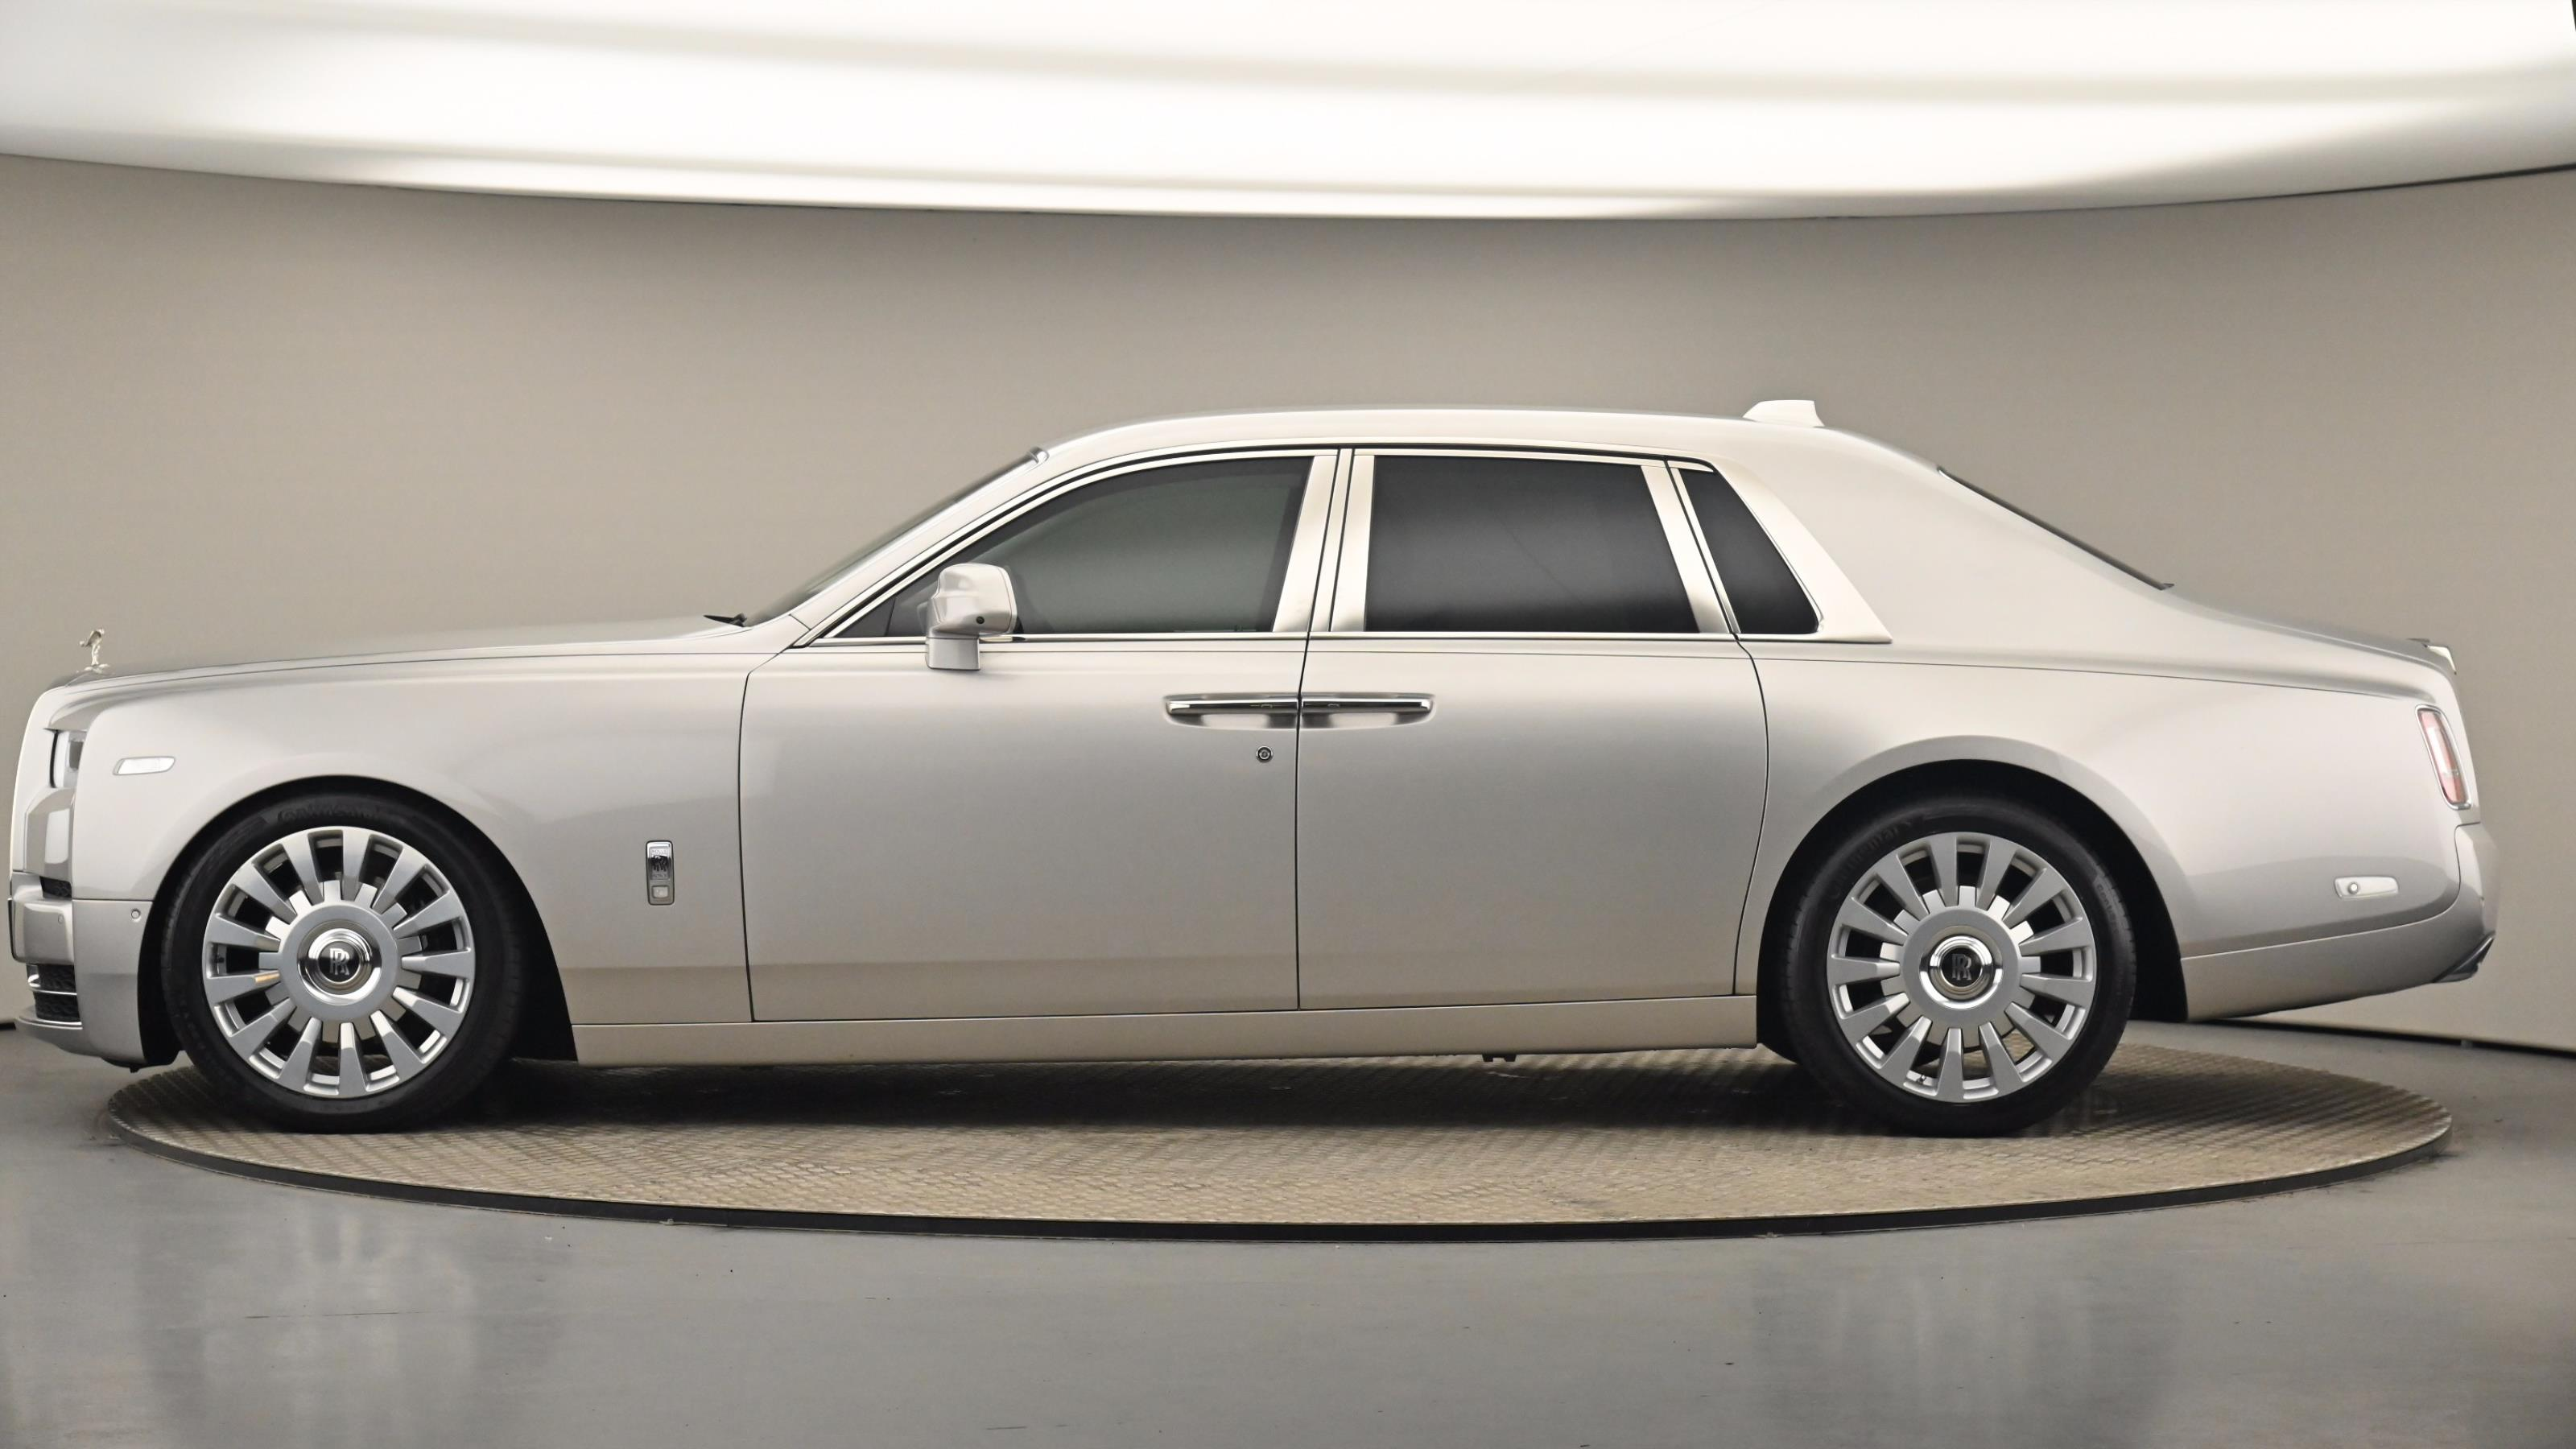 Used 2018 Rolls-Royce PHANTOM 4dr Auto SILVER at Saxton4x4